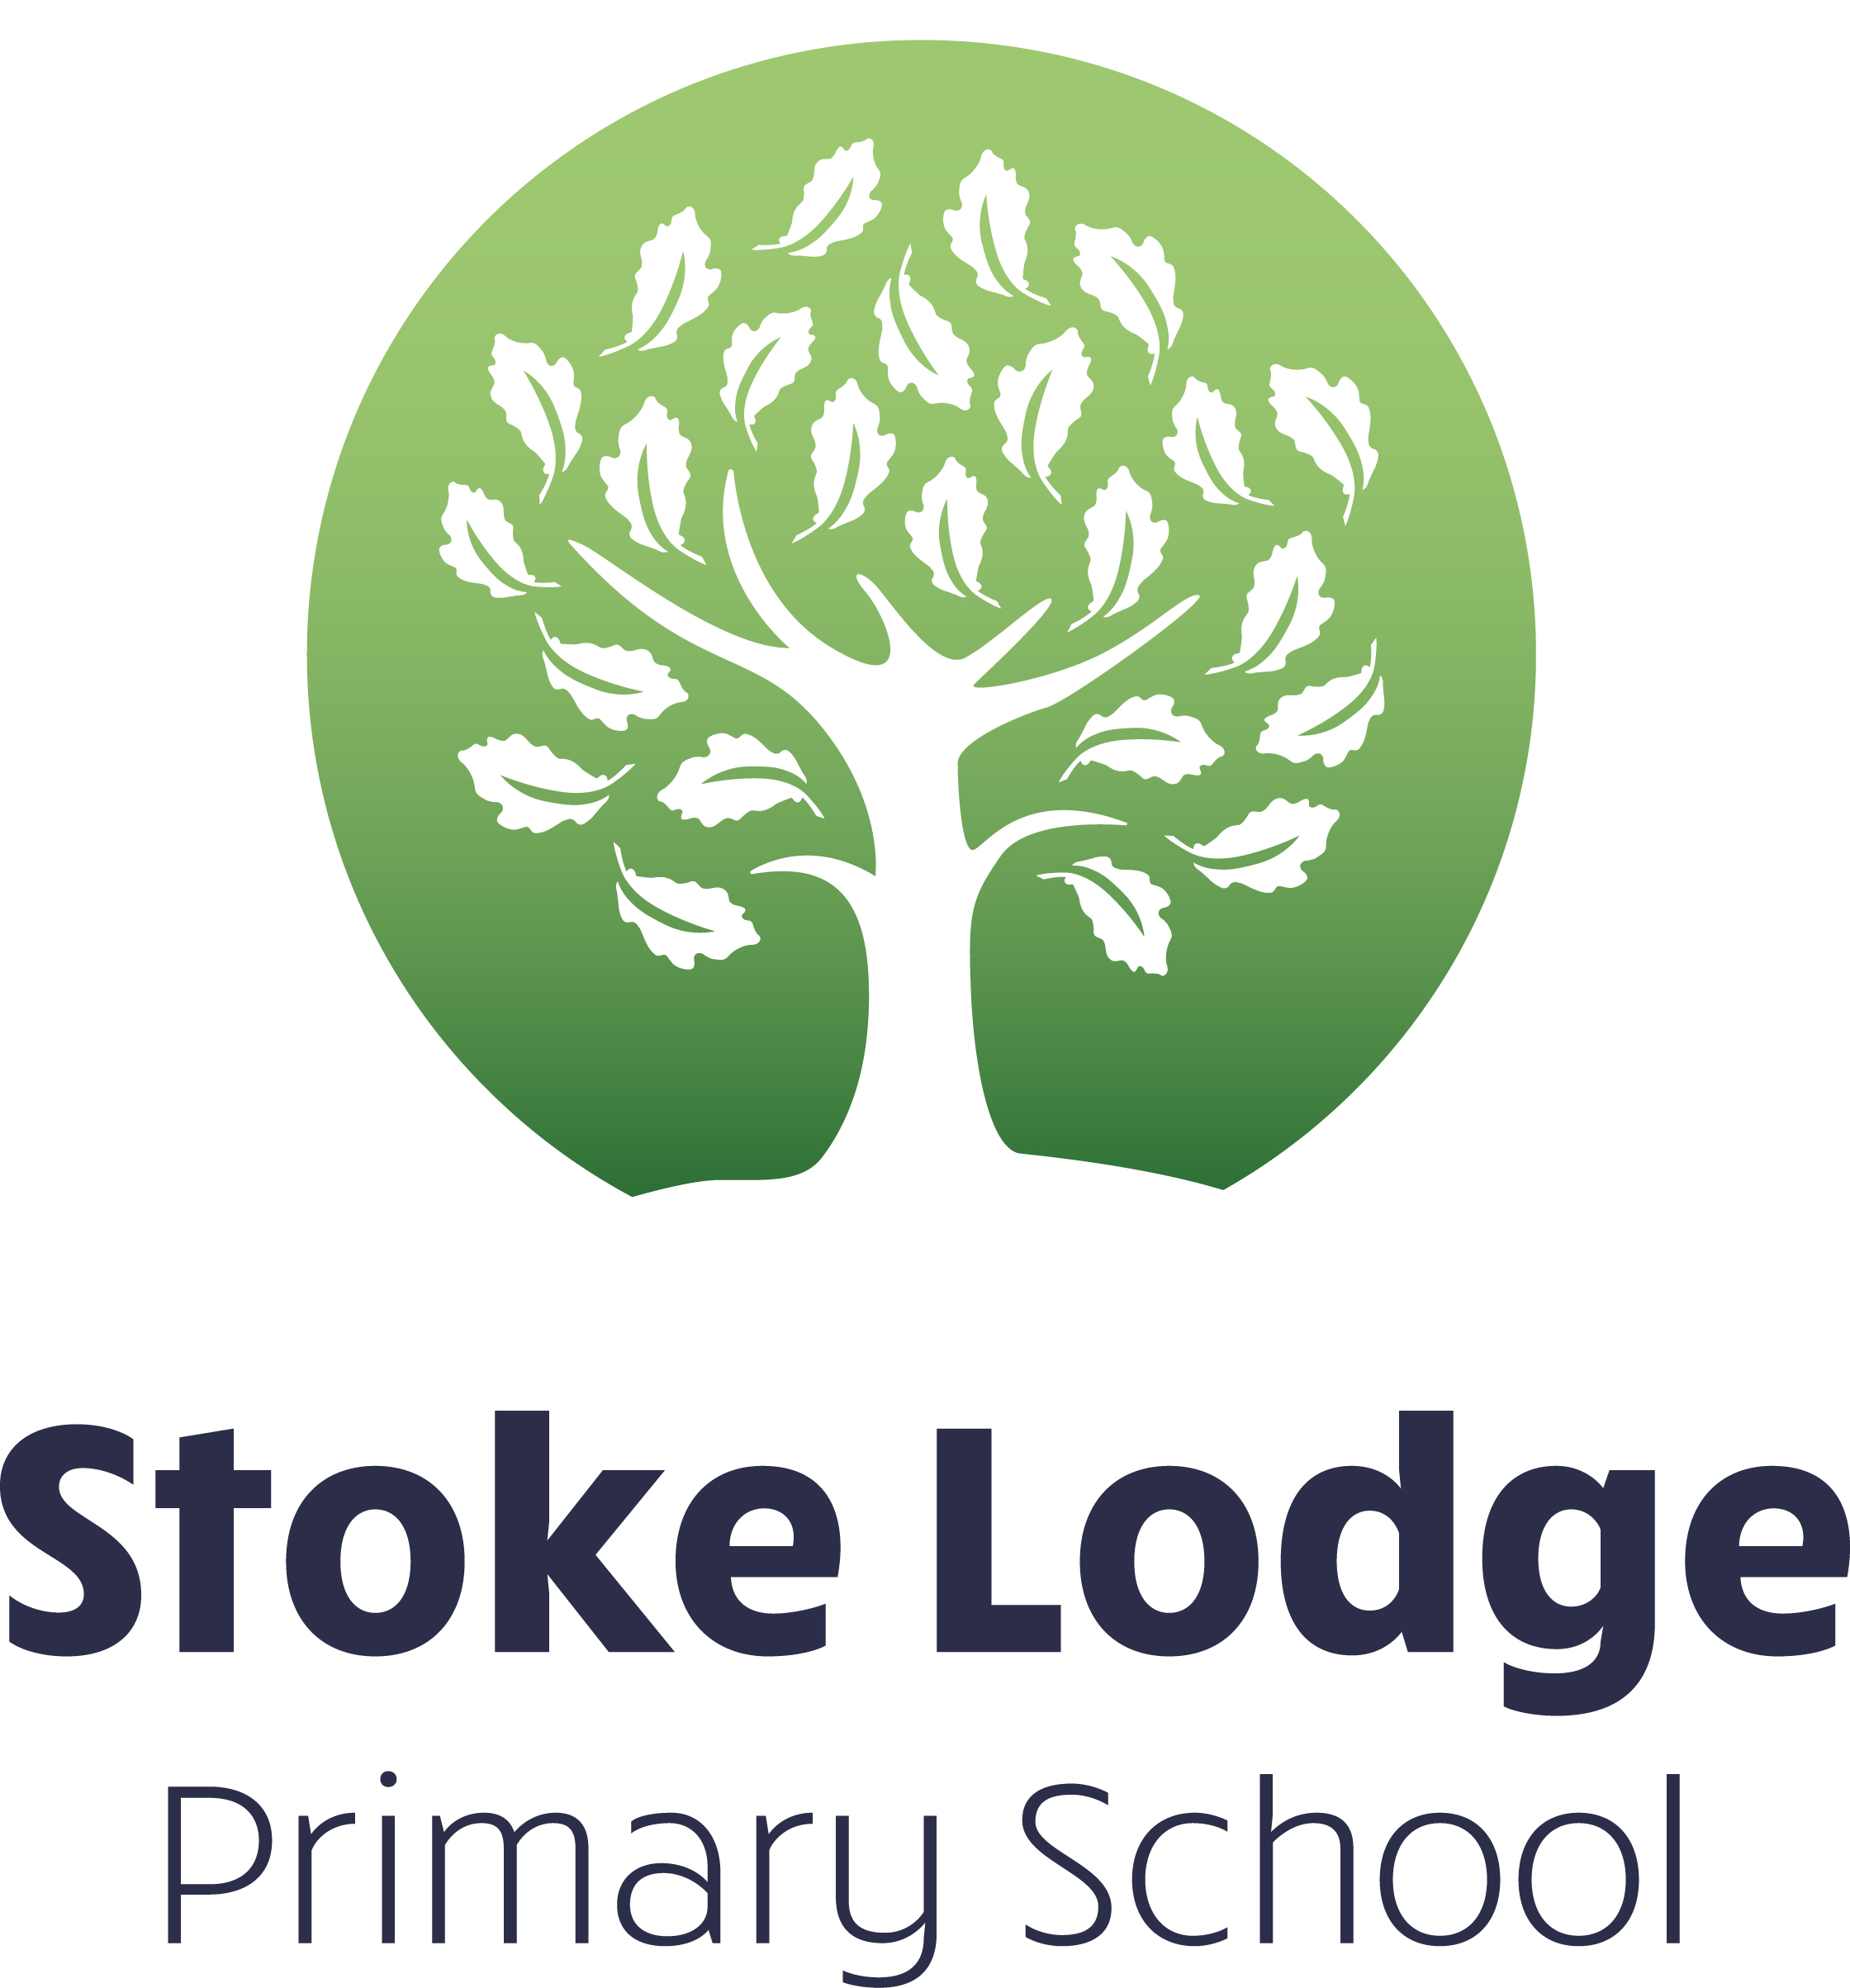 Stoke Lodge Primary School